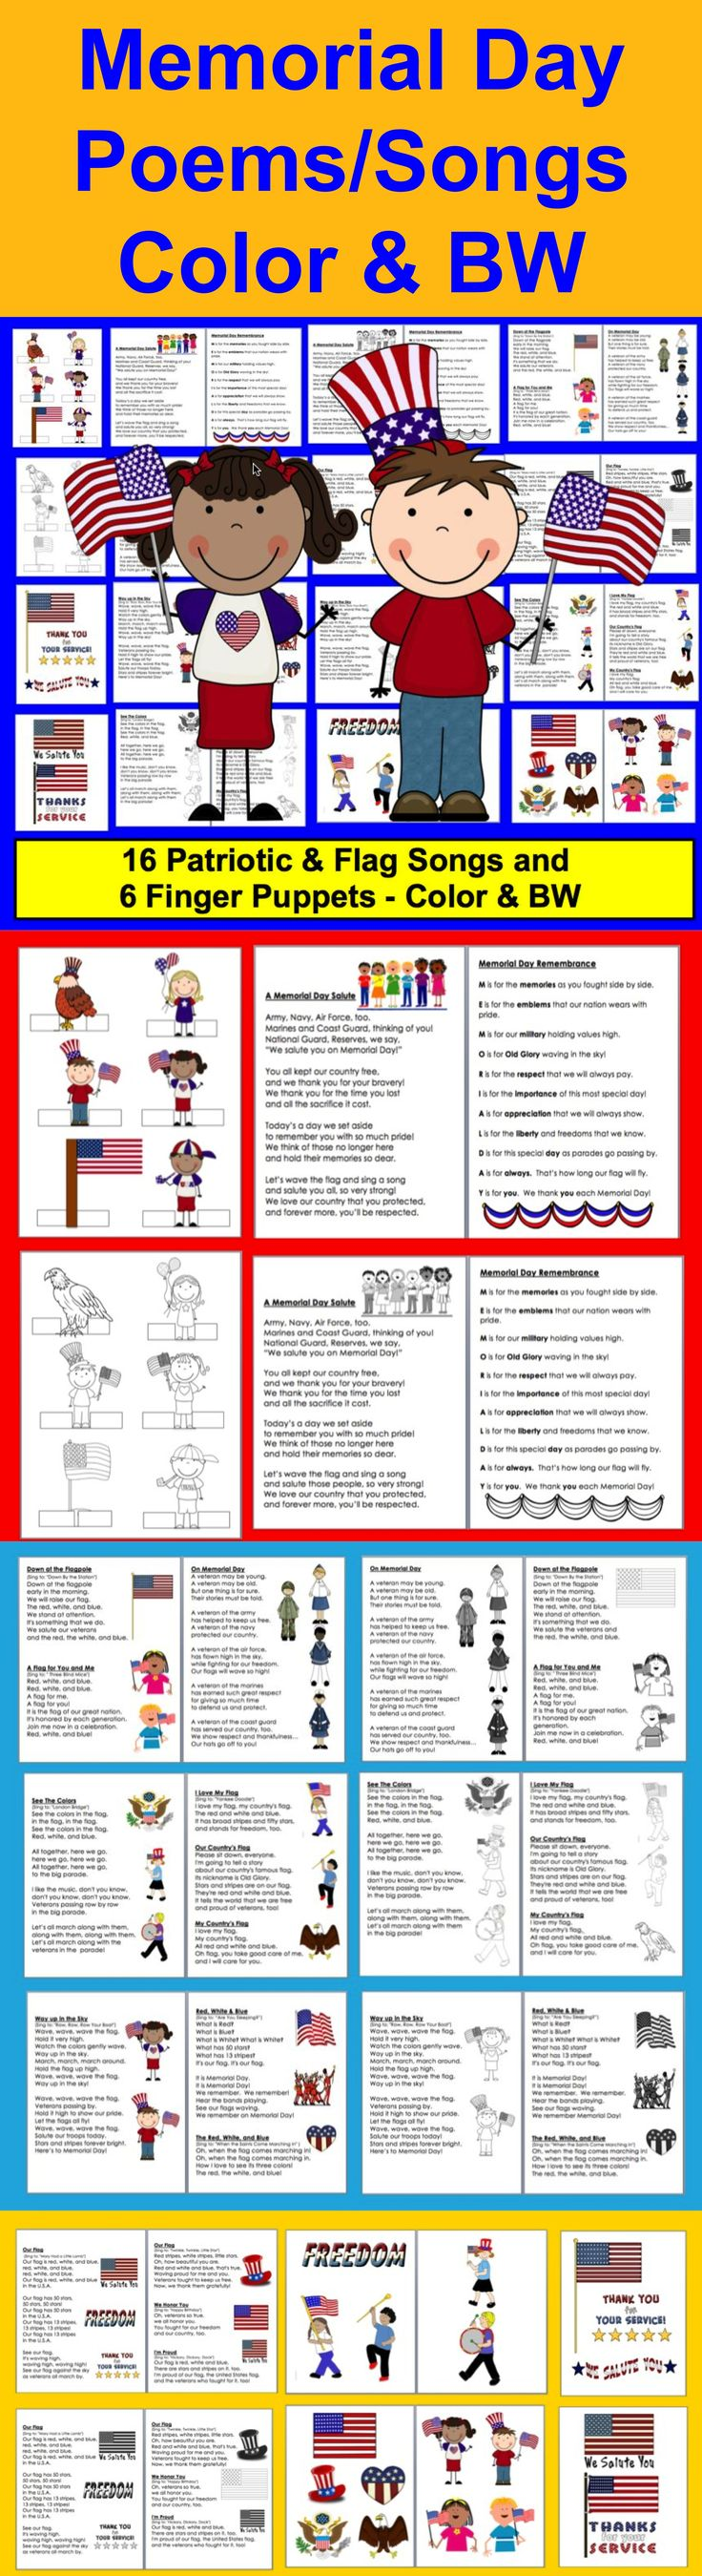 $ Memorial Day and Patriotic Poems and Songs –  29 page file – All Illustrated with Patriotic themed Graphics-2 Versions – Color and B/W. 16 Poems/Songs, some about Memorial Day and some about the flag and patriotism. Just choose those you like, and print just those pages. Larger patriotic images to cut out and glue onto shared reading charts.  Sing to familiar tunes, or chant.  Use some or all year after year.